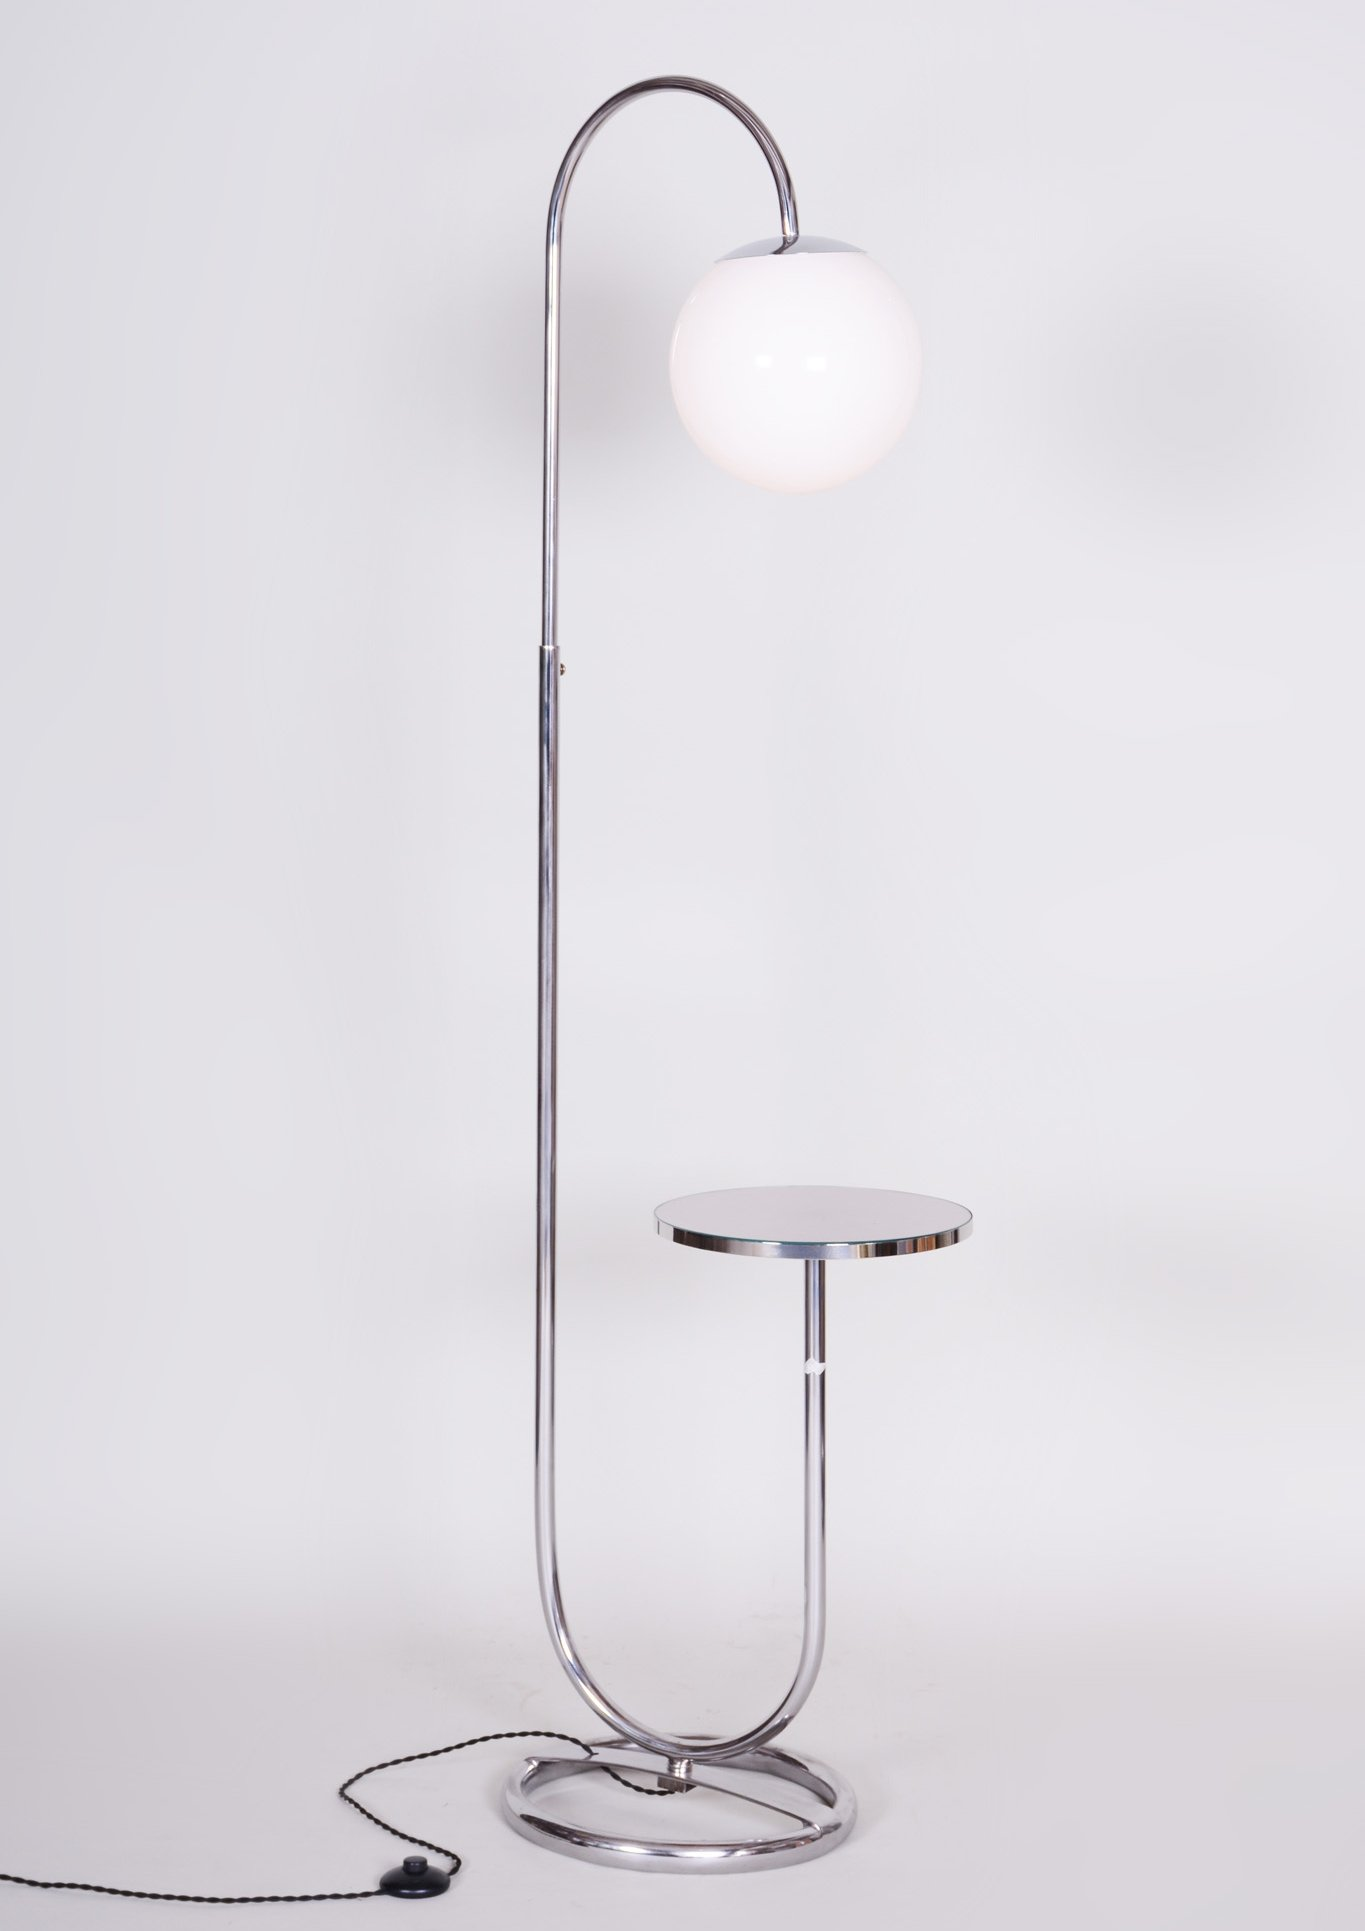 Picture of: 20th Century Chrome Floor Lamp By Hynek Gottwald 1930s 116524